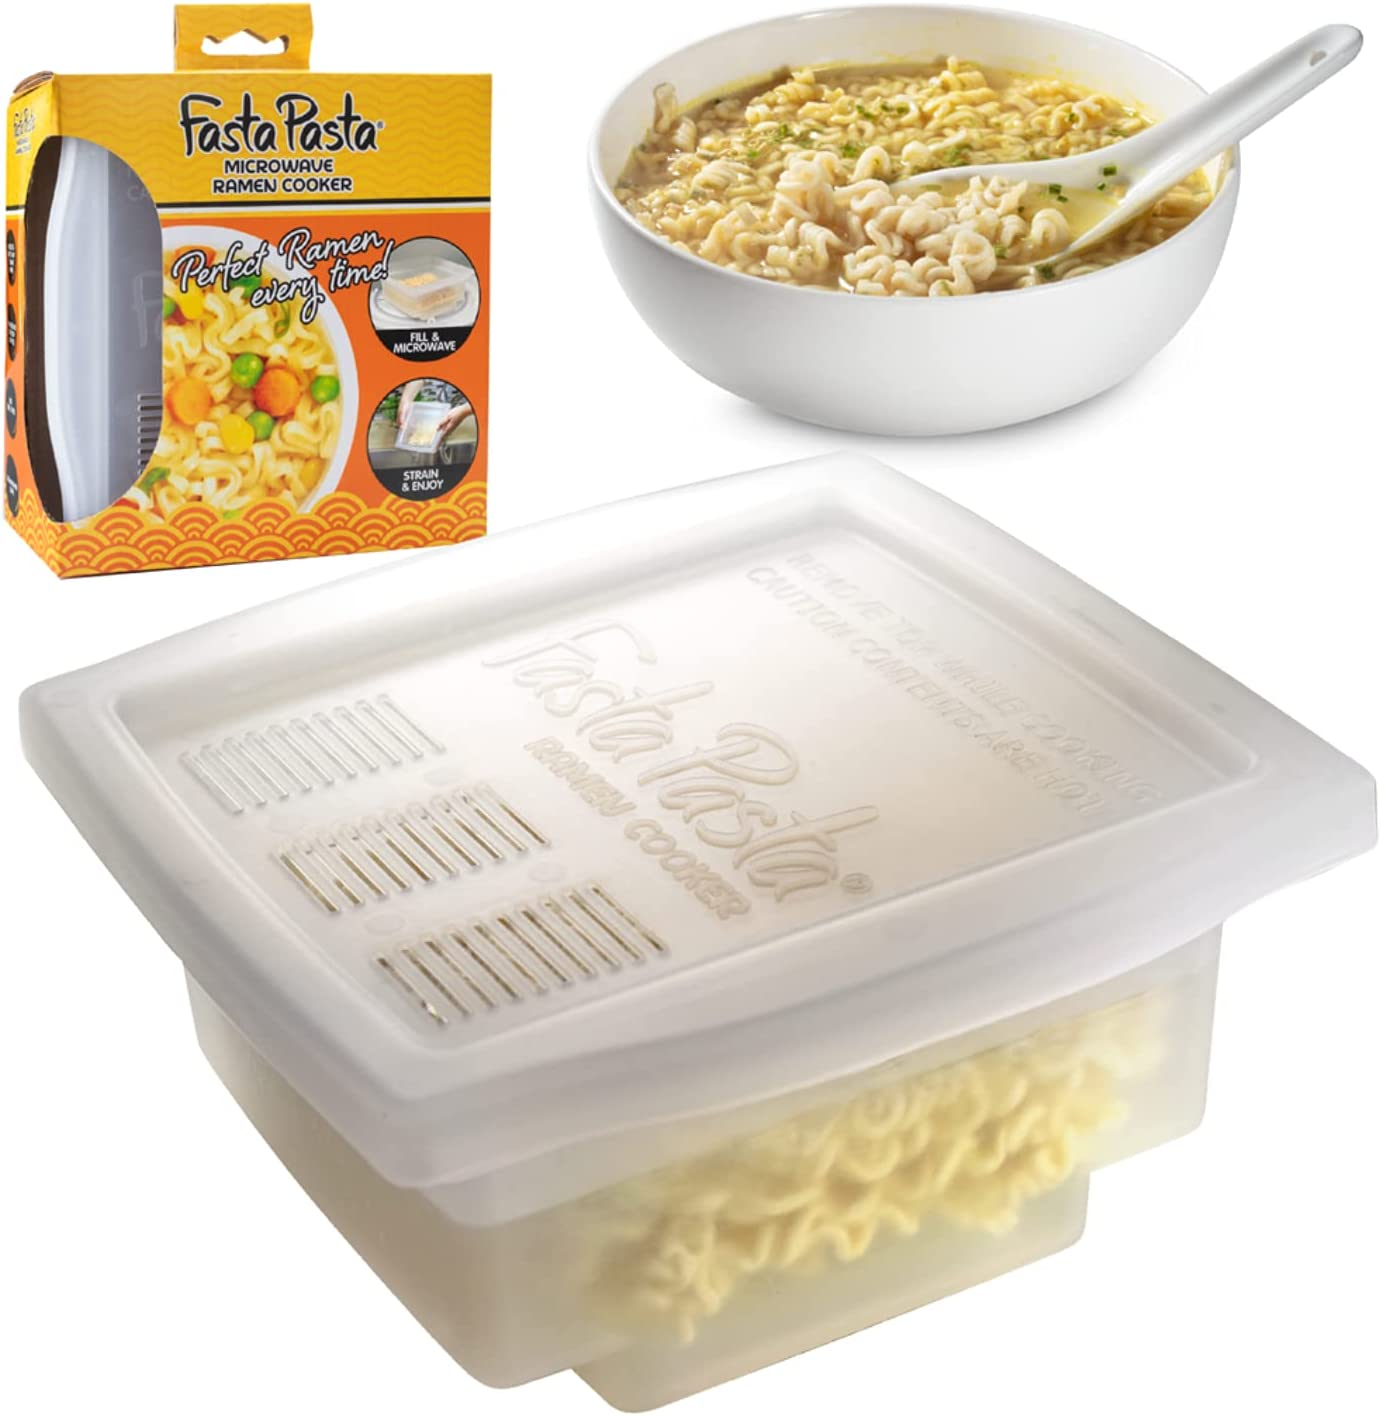 Fasta Pasta Microwave Ramen Noodle Cooker - No Mess, Sticking or Waiting For Boil - Patented Design Makes Perfect Noodles Every Time